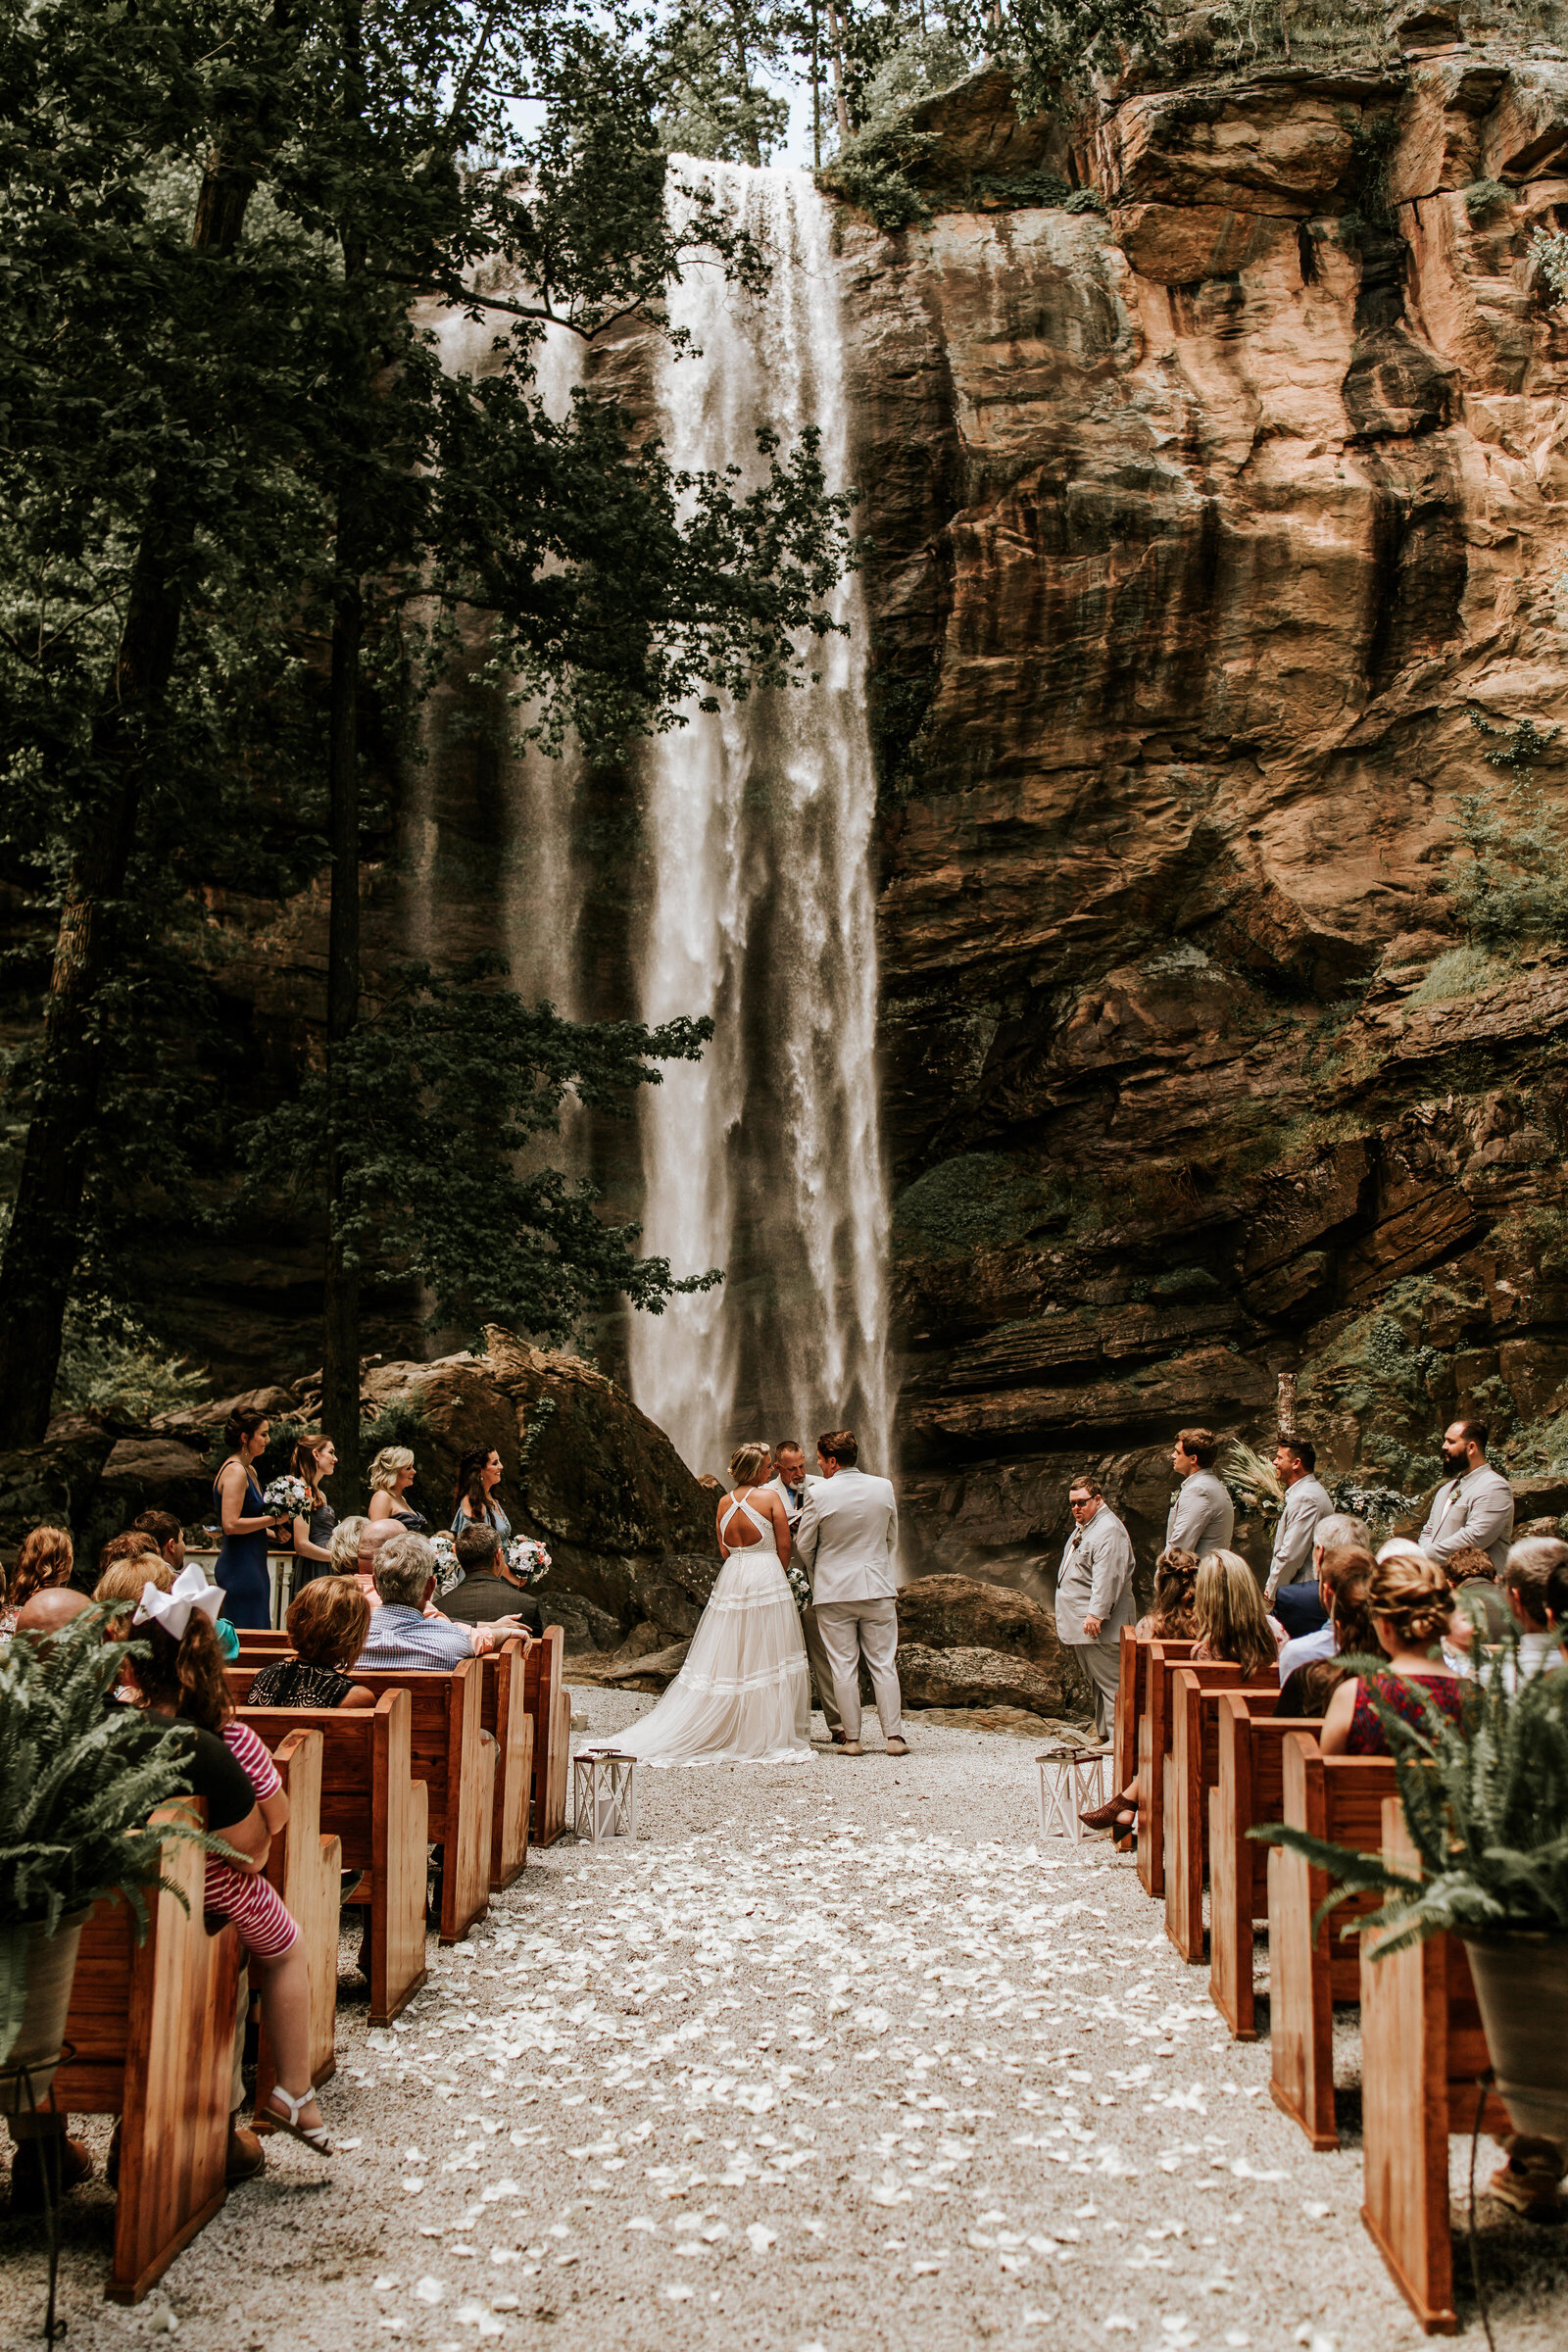 J.Michelle Photography photographs a wedding ceremony at Toccoa Falls in Georgia